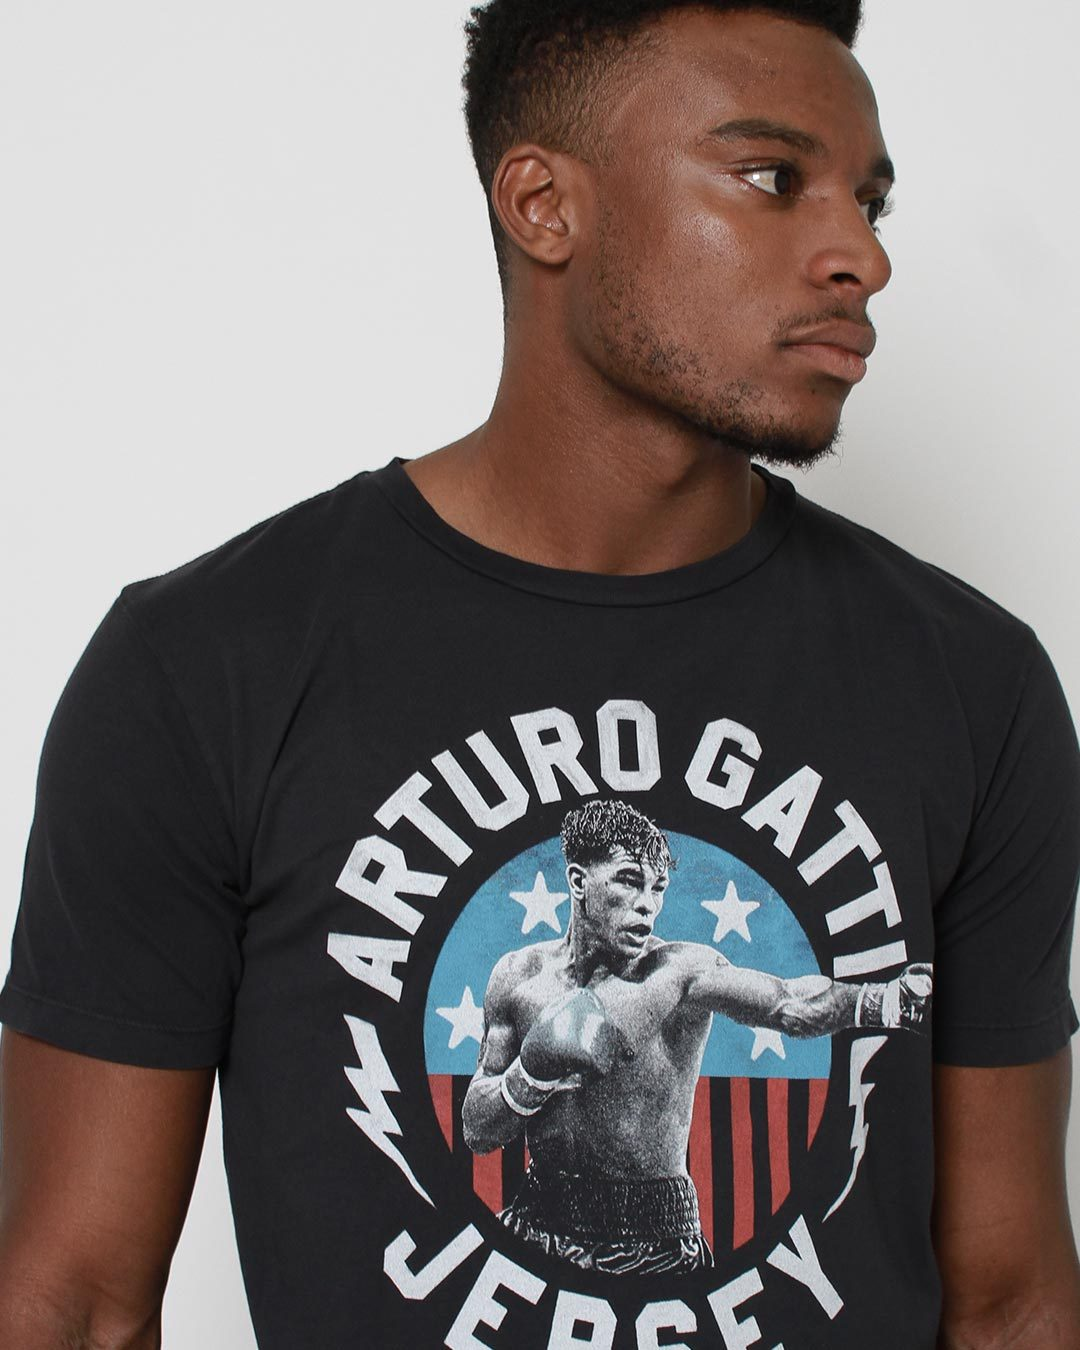 Arturo Gatti Jersey City Tee - Roots of Inc dba Roots of Fight